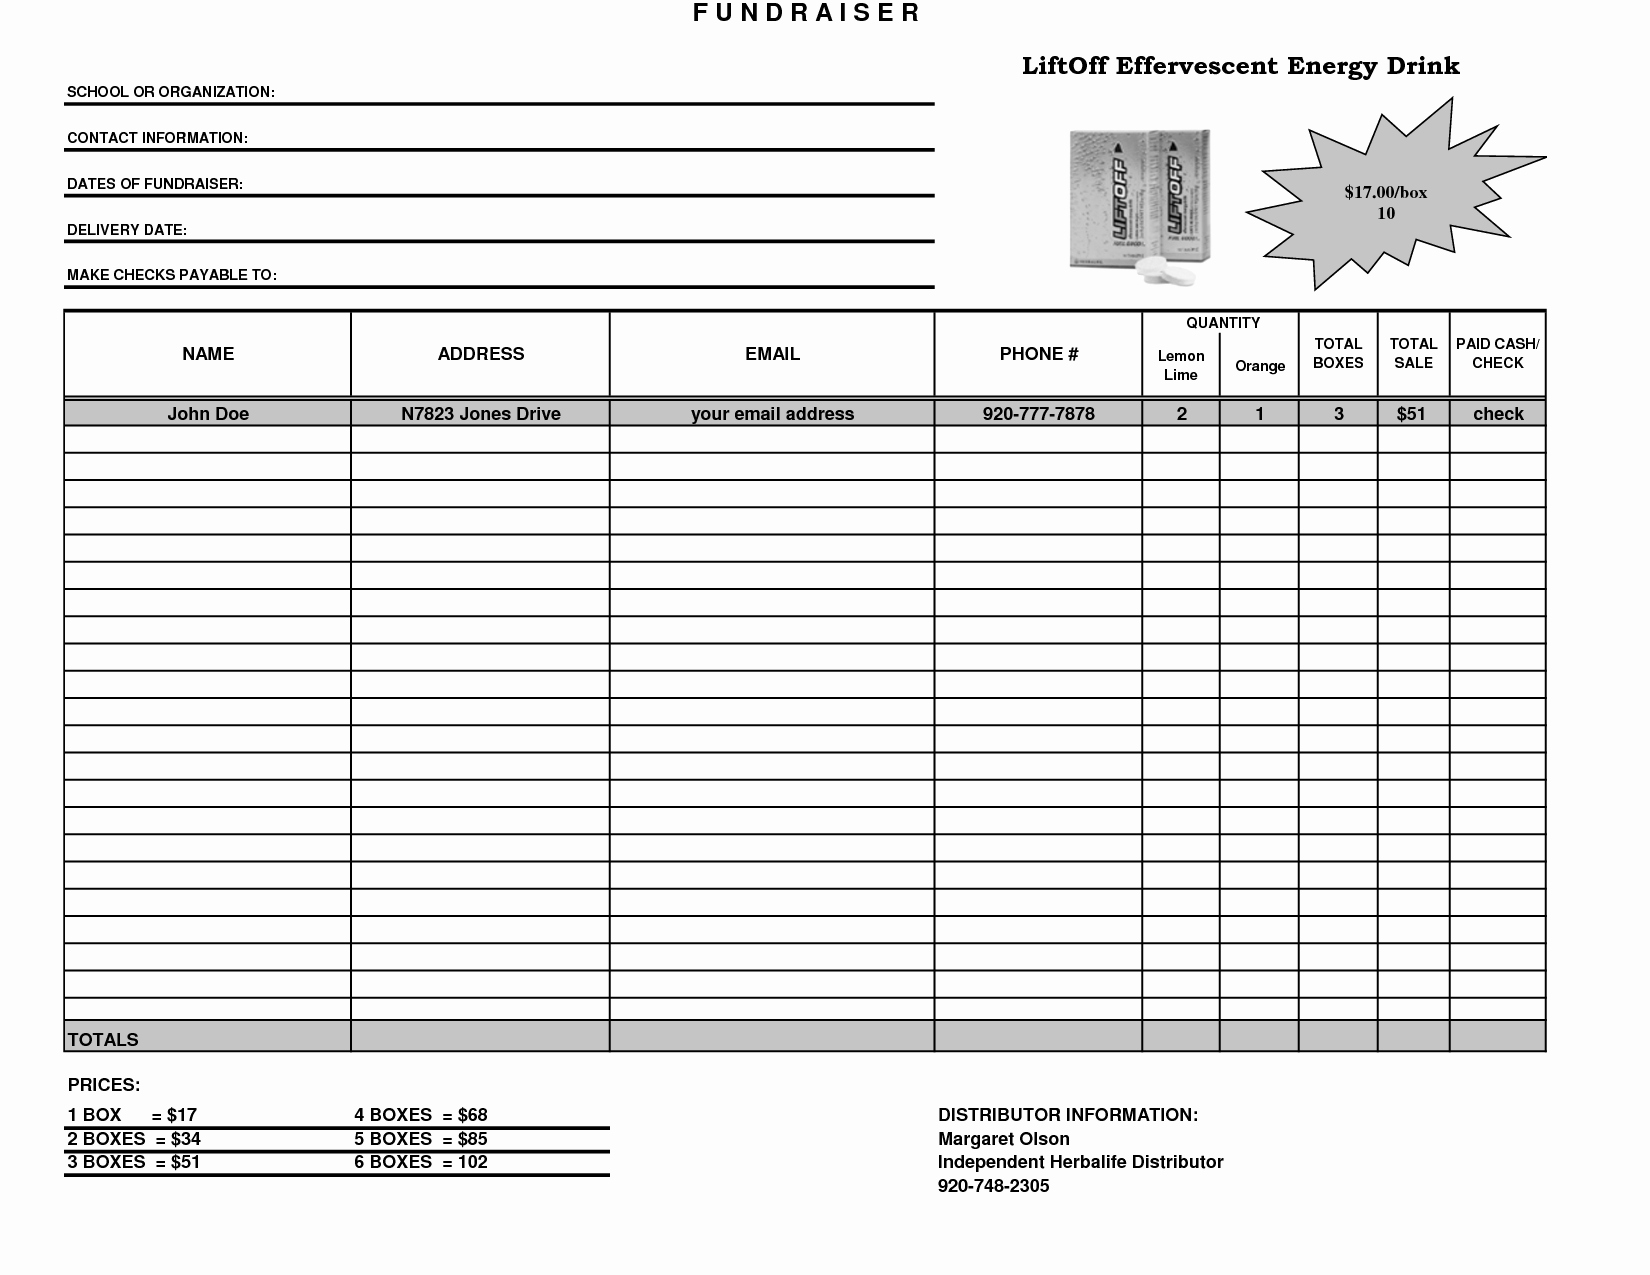 Fundraising order form Templates Lovely Fundraiser Template Excel Fundraiser order form Template